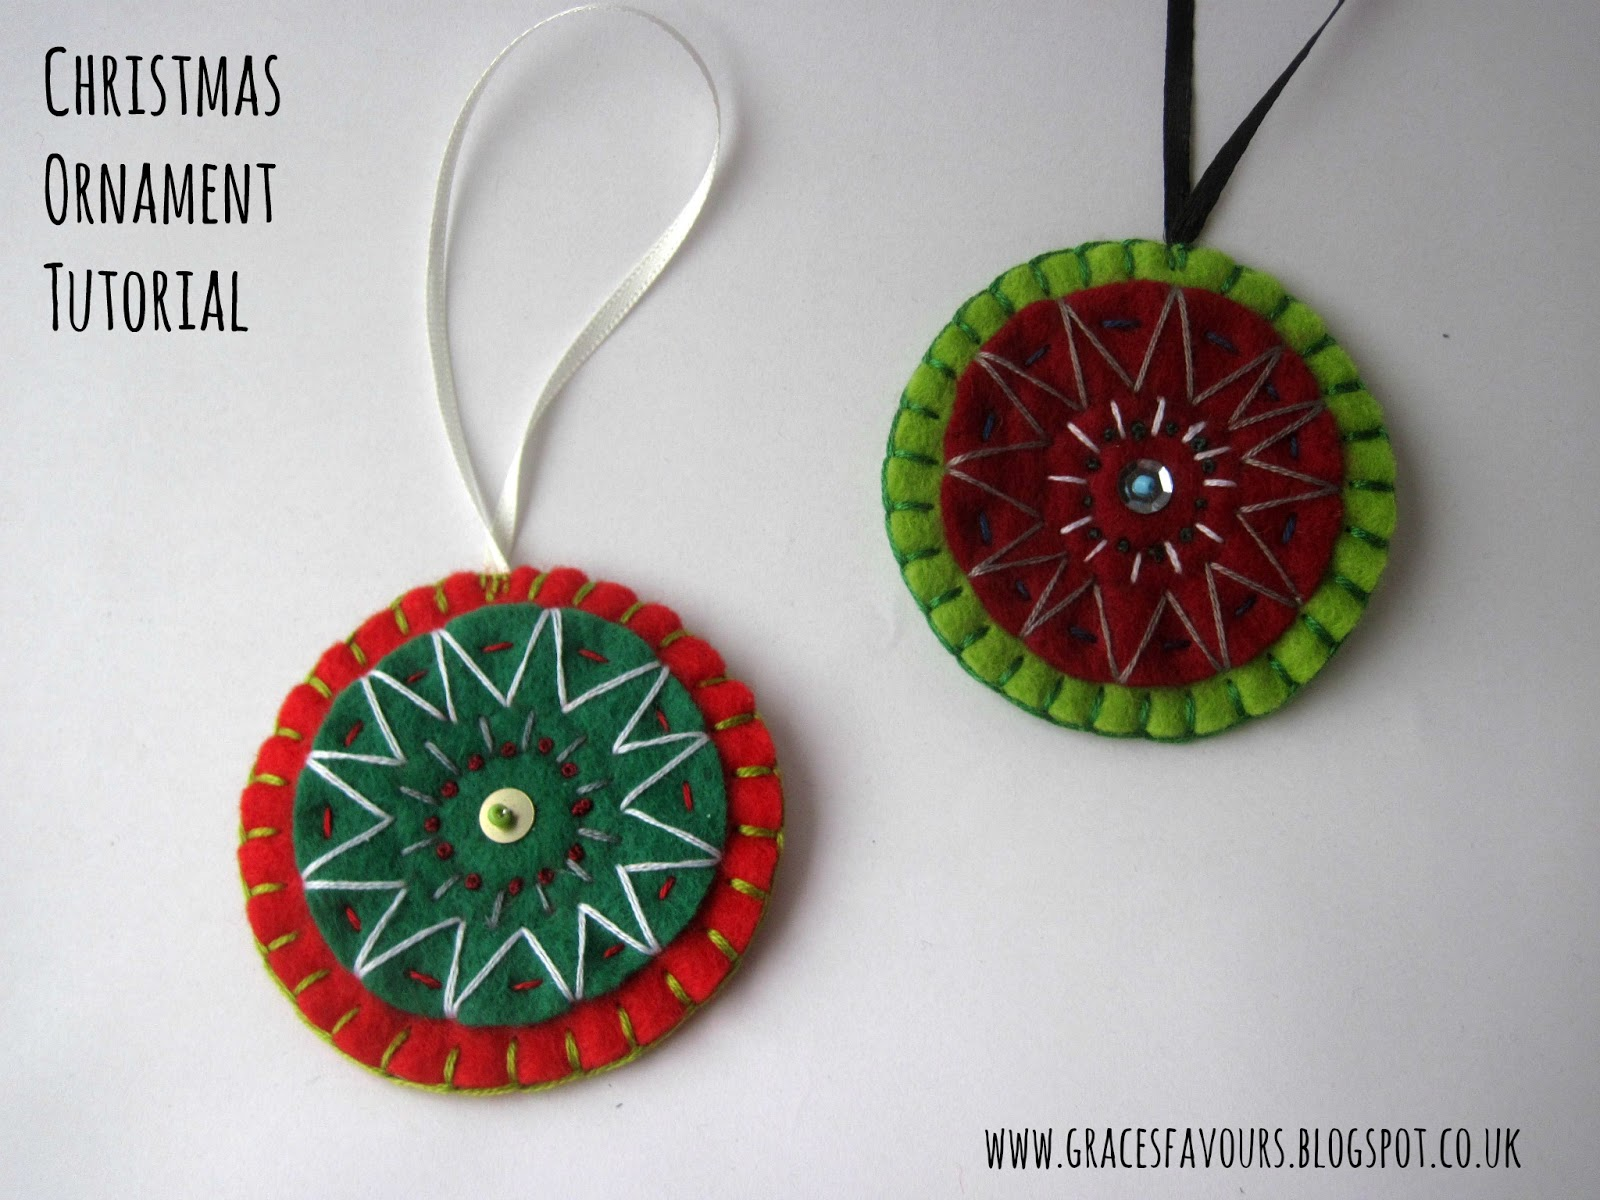 How To Make An Easy Felt Christmas Ornament